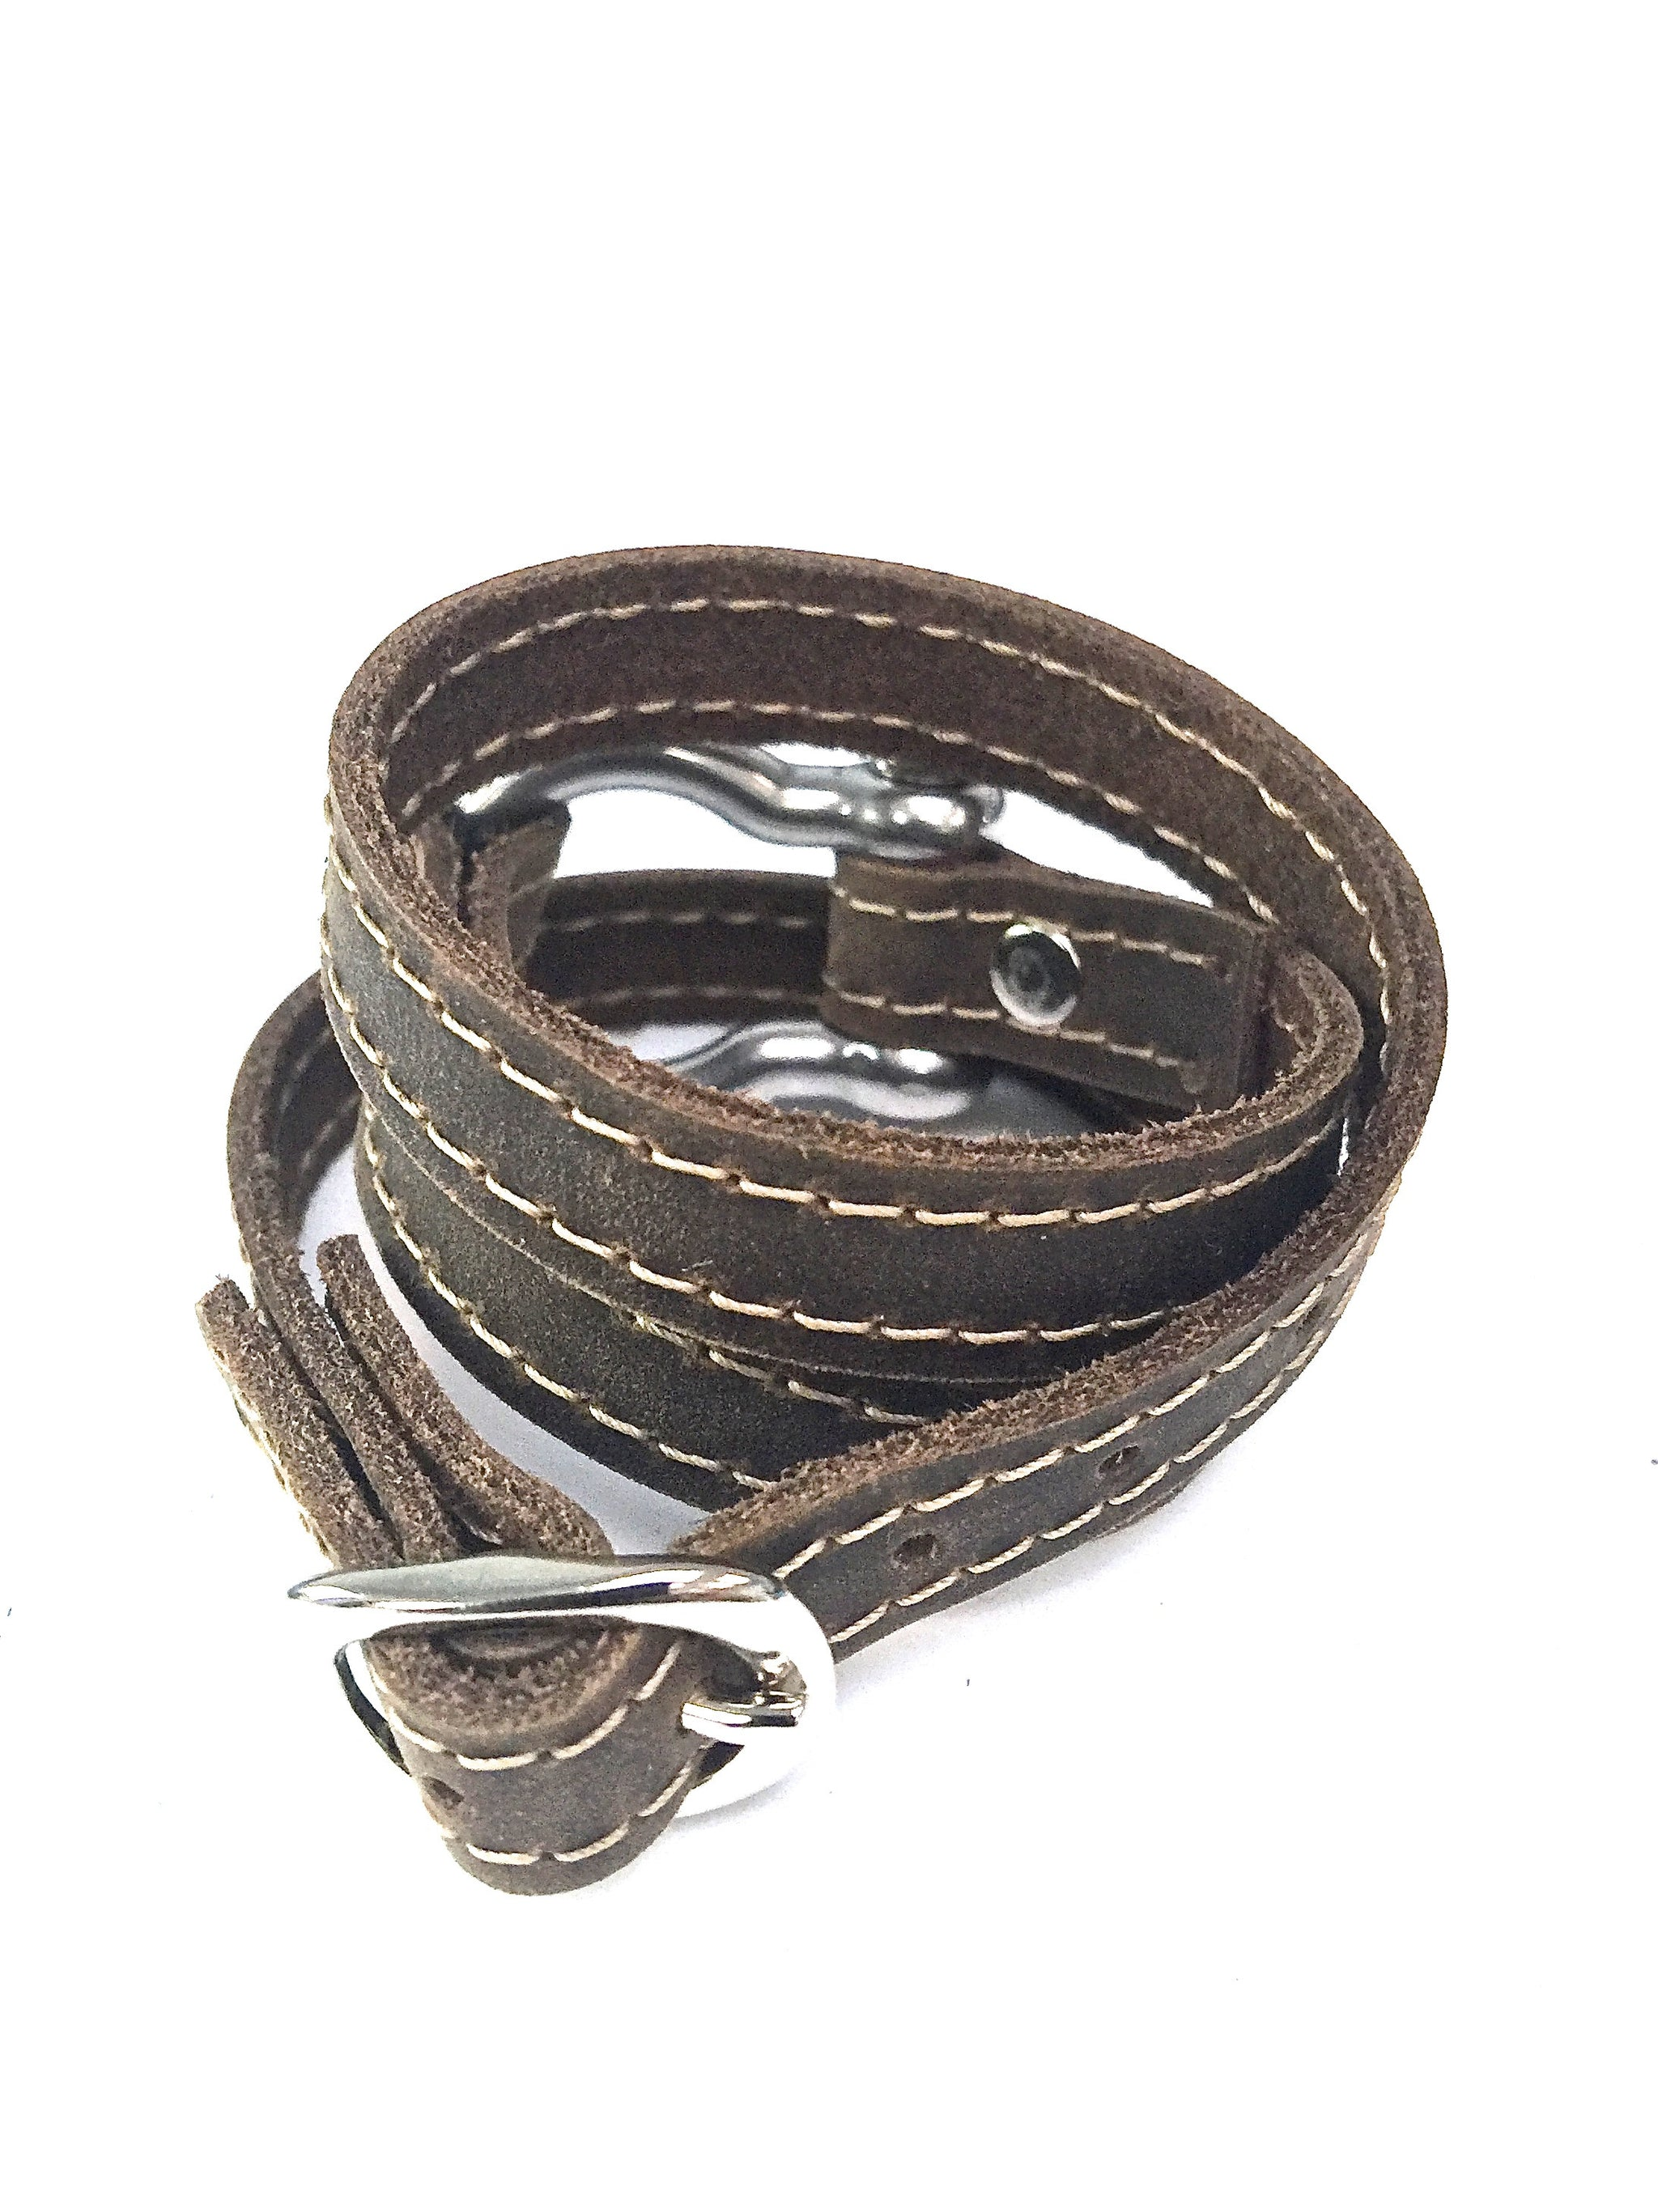 Signature Shackle Wraparound Bracelet Distressed Utility Leather